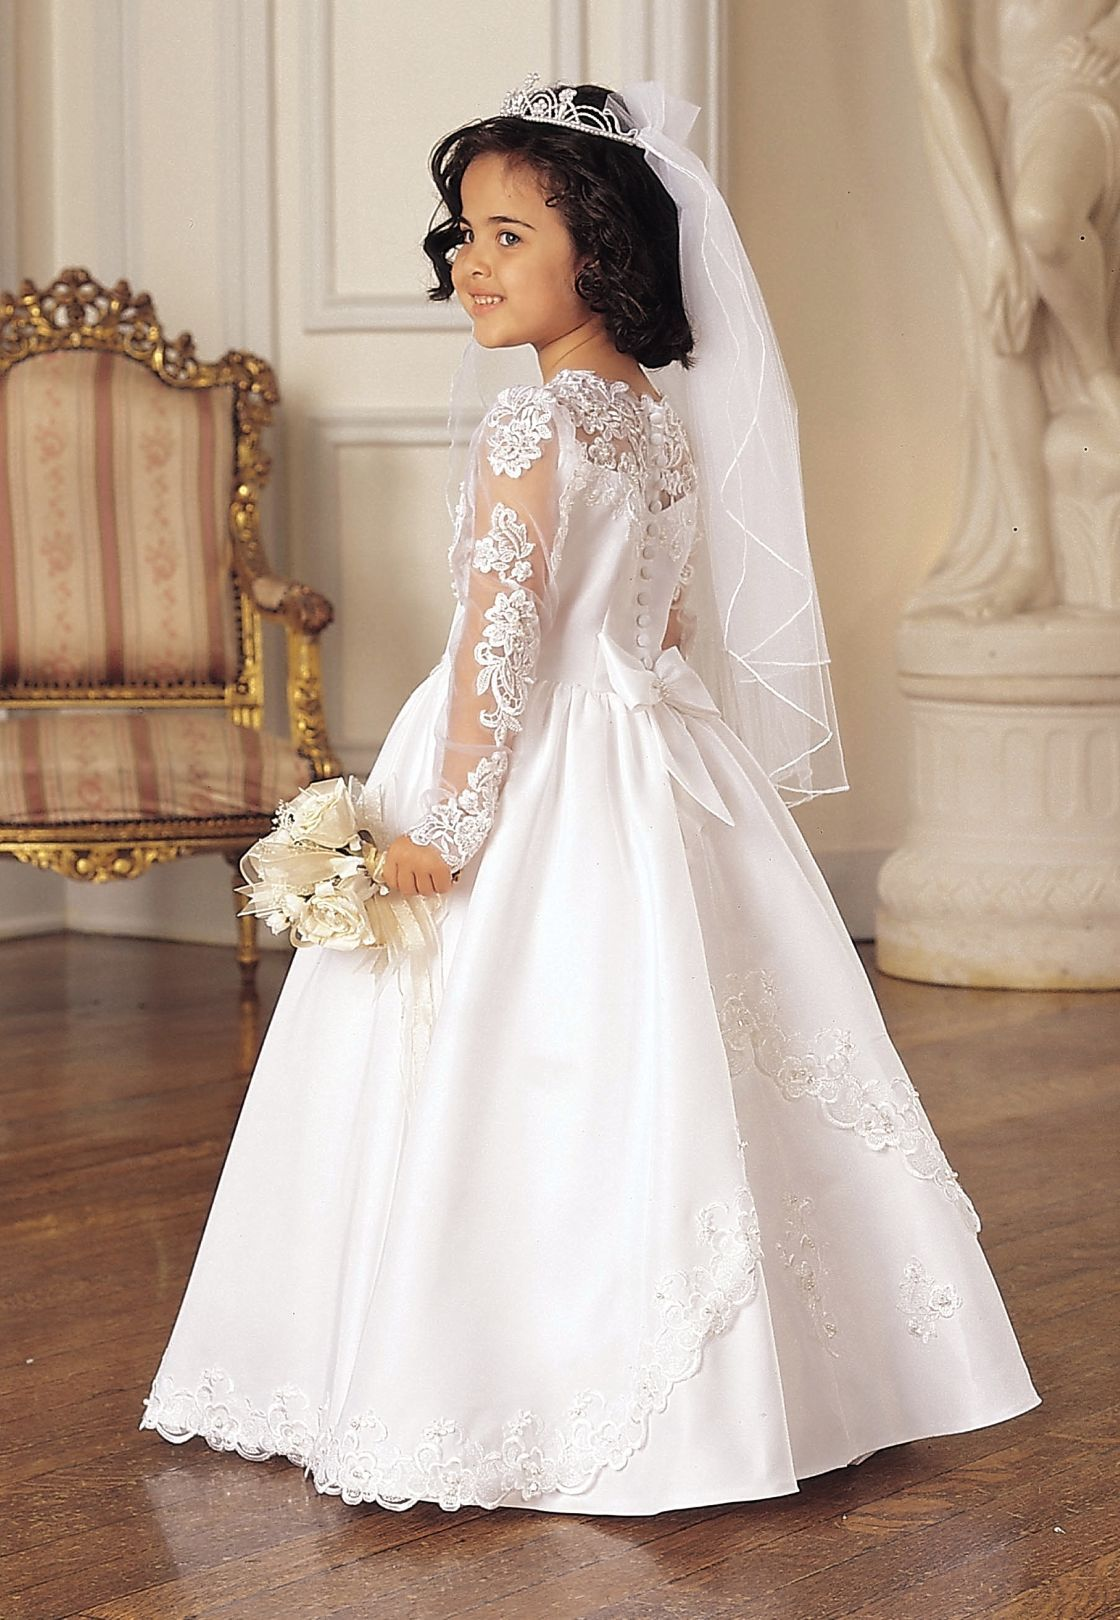 Maria First Holy Communion Dress like the sleeves | Vestidos de ...